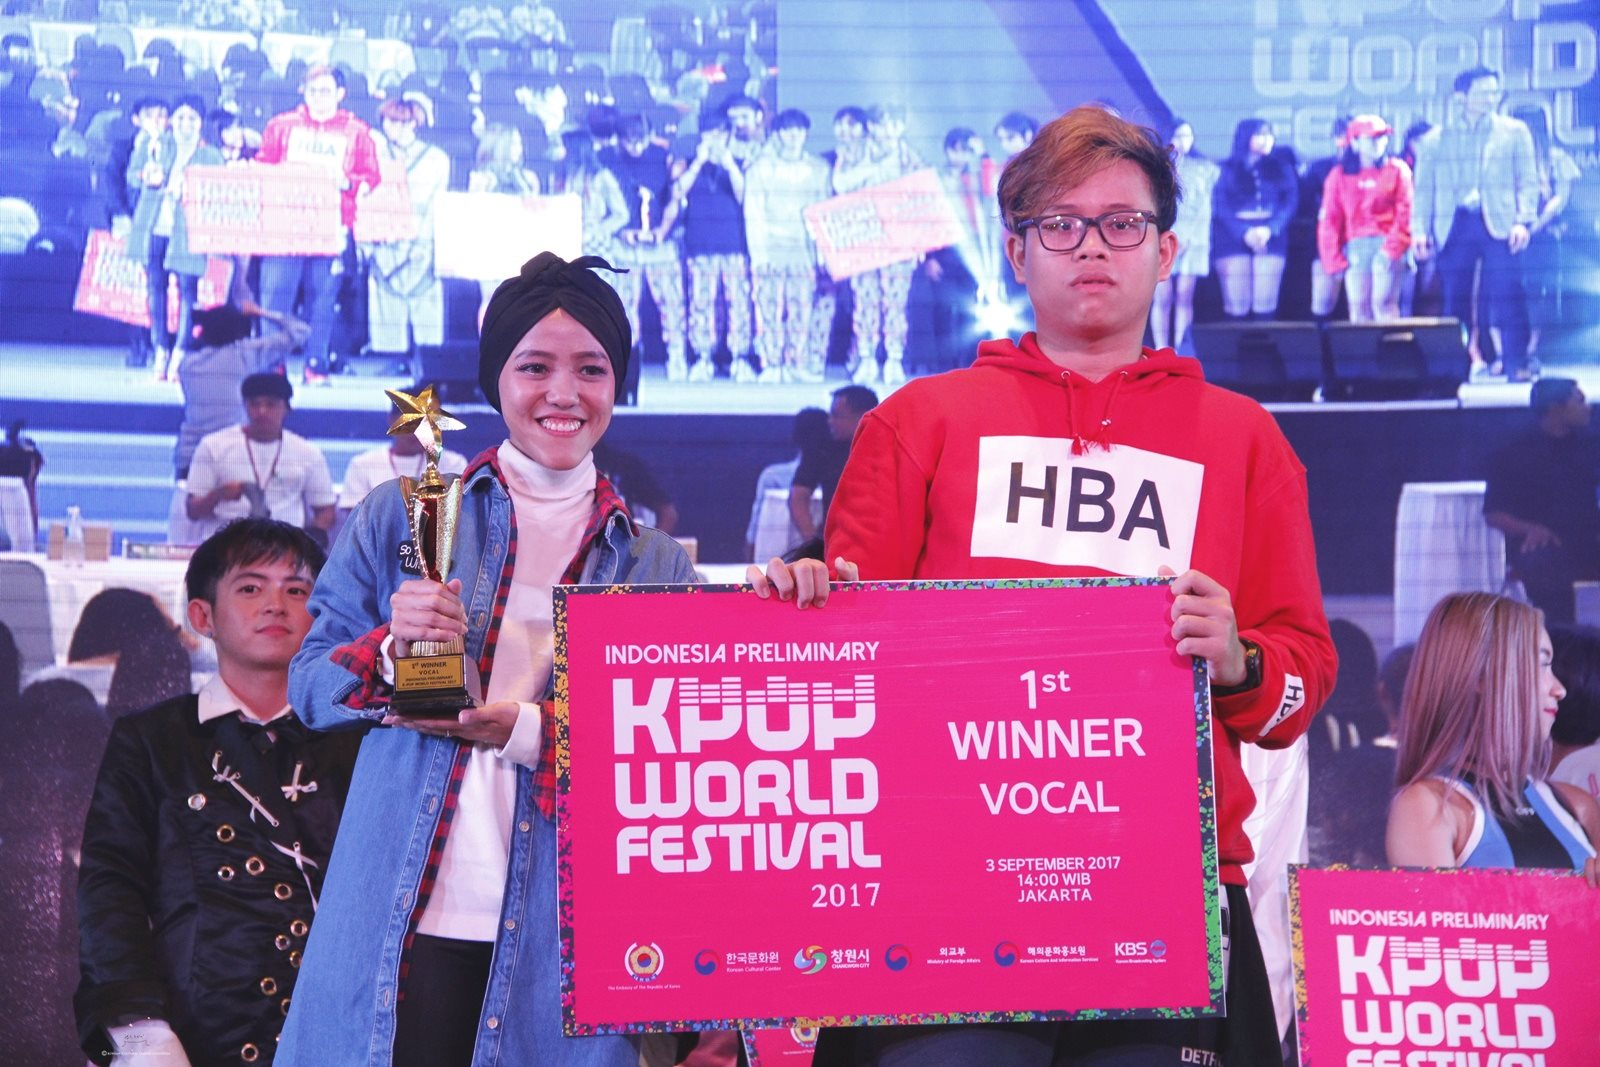 k-pop-world-festival-2017-indonesia_kcc-02